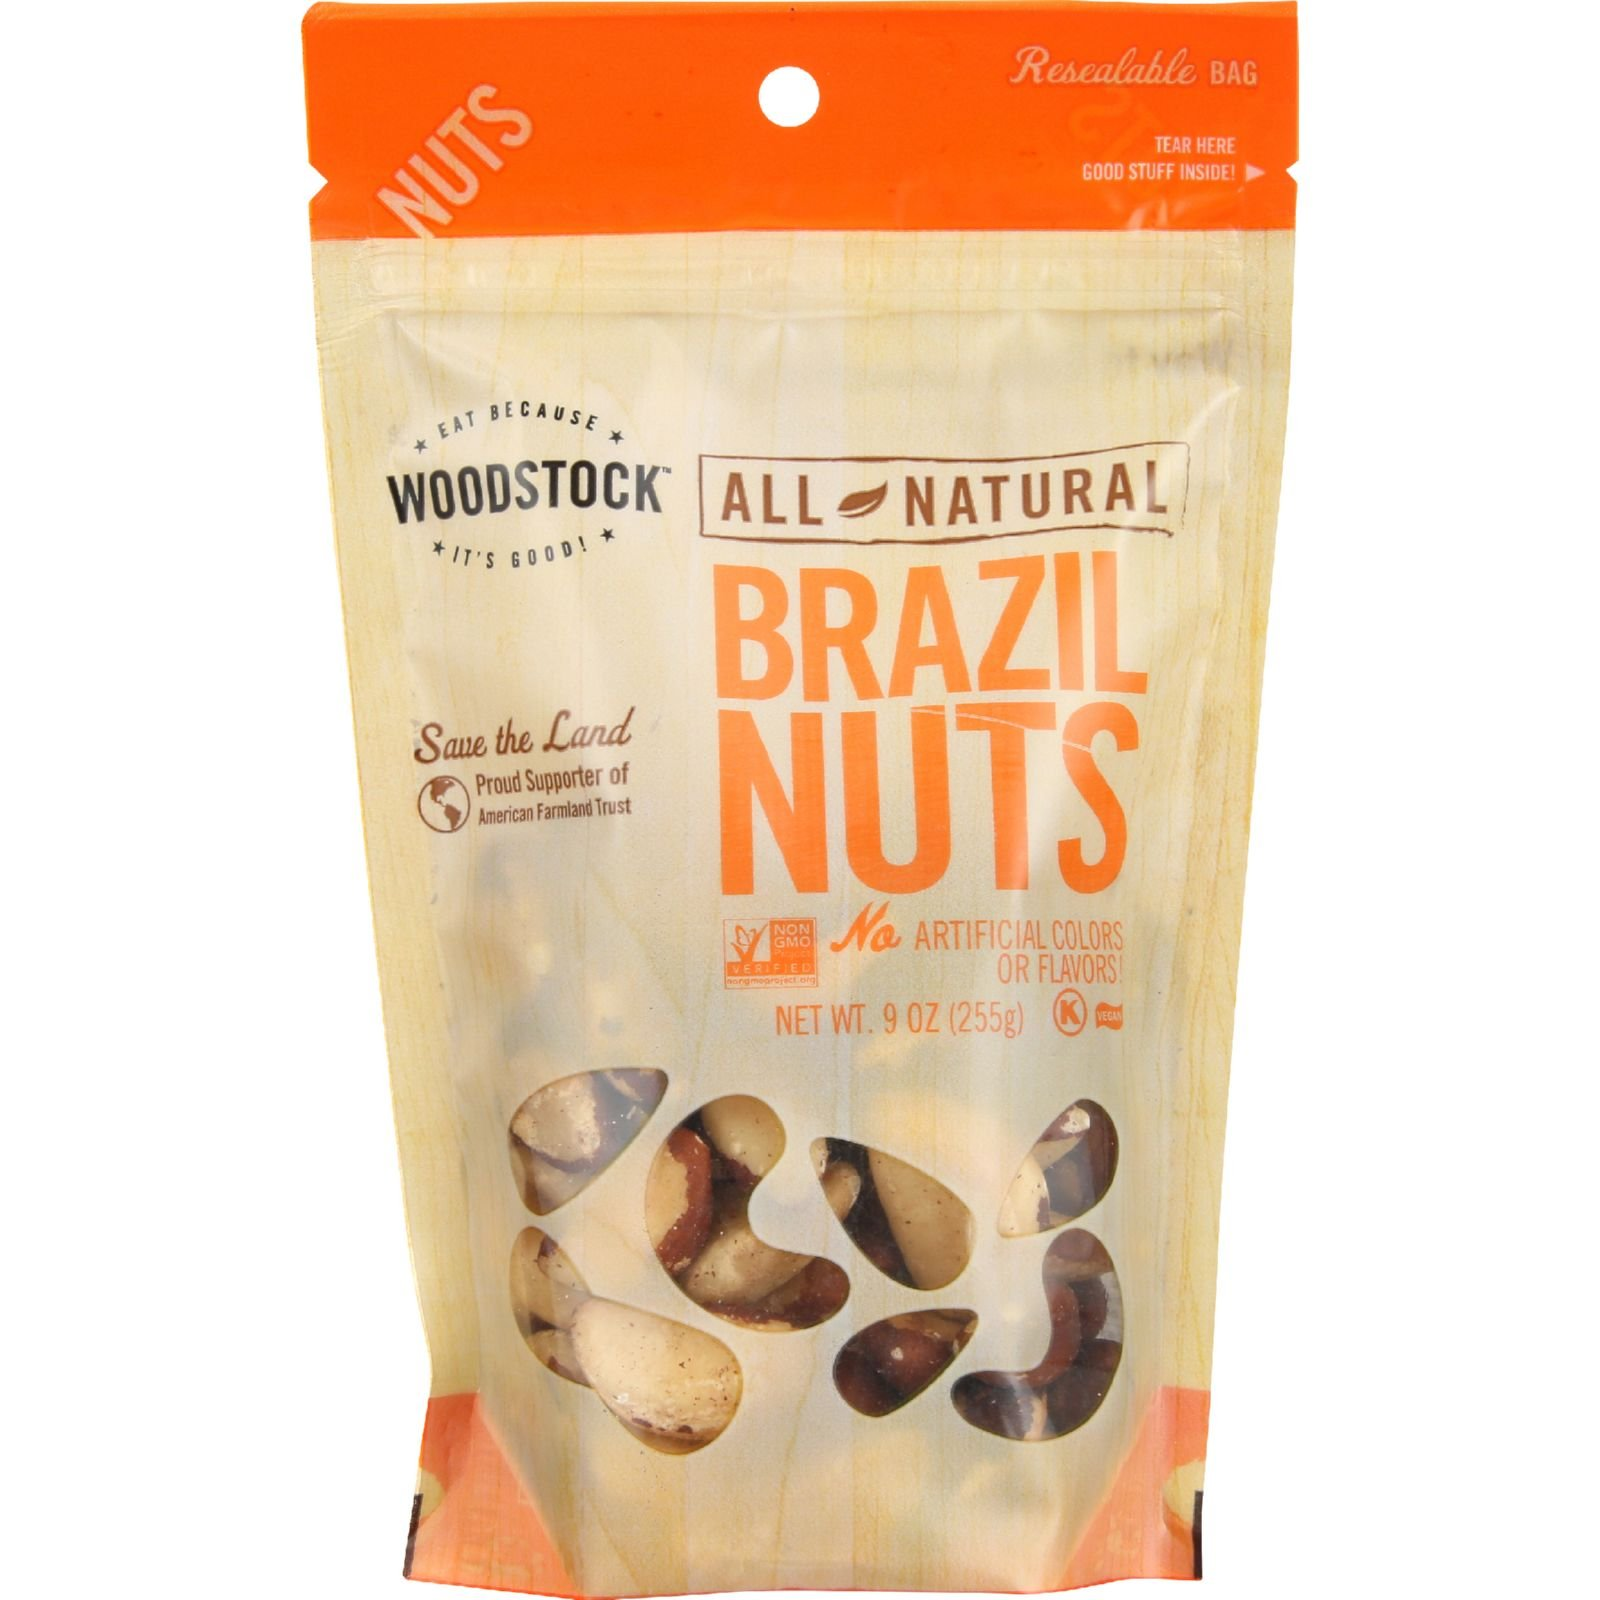 Woodstock - All Natural - Brazil Nuts - Medium - Fancy - Raw - 9 oz - case of 8 - Vegan - Non GMO